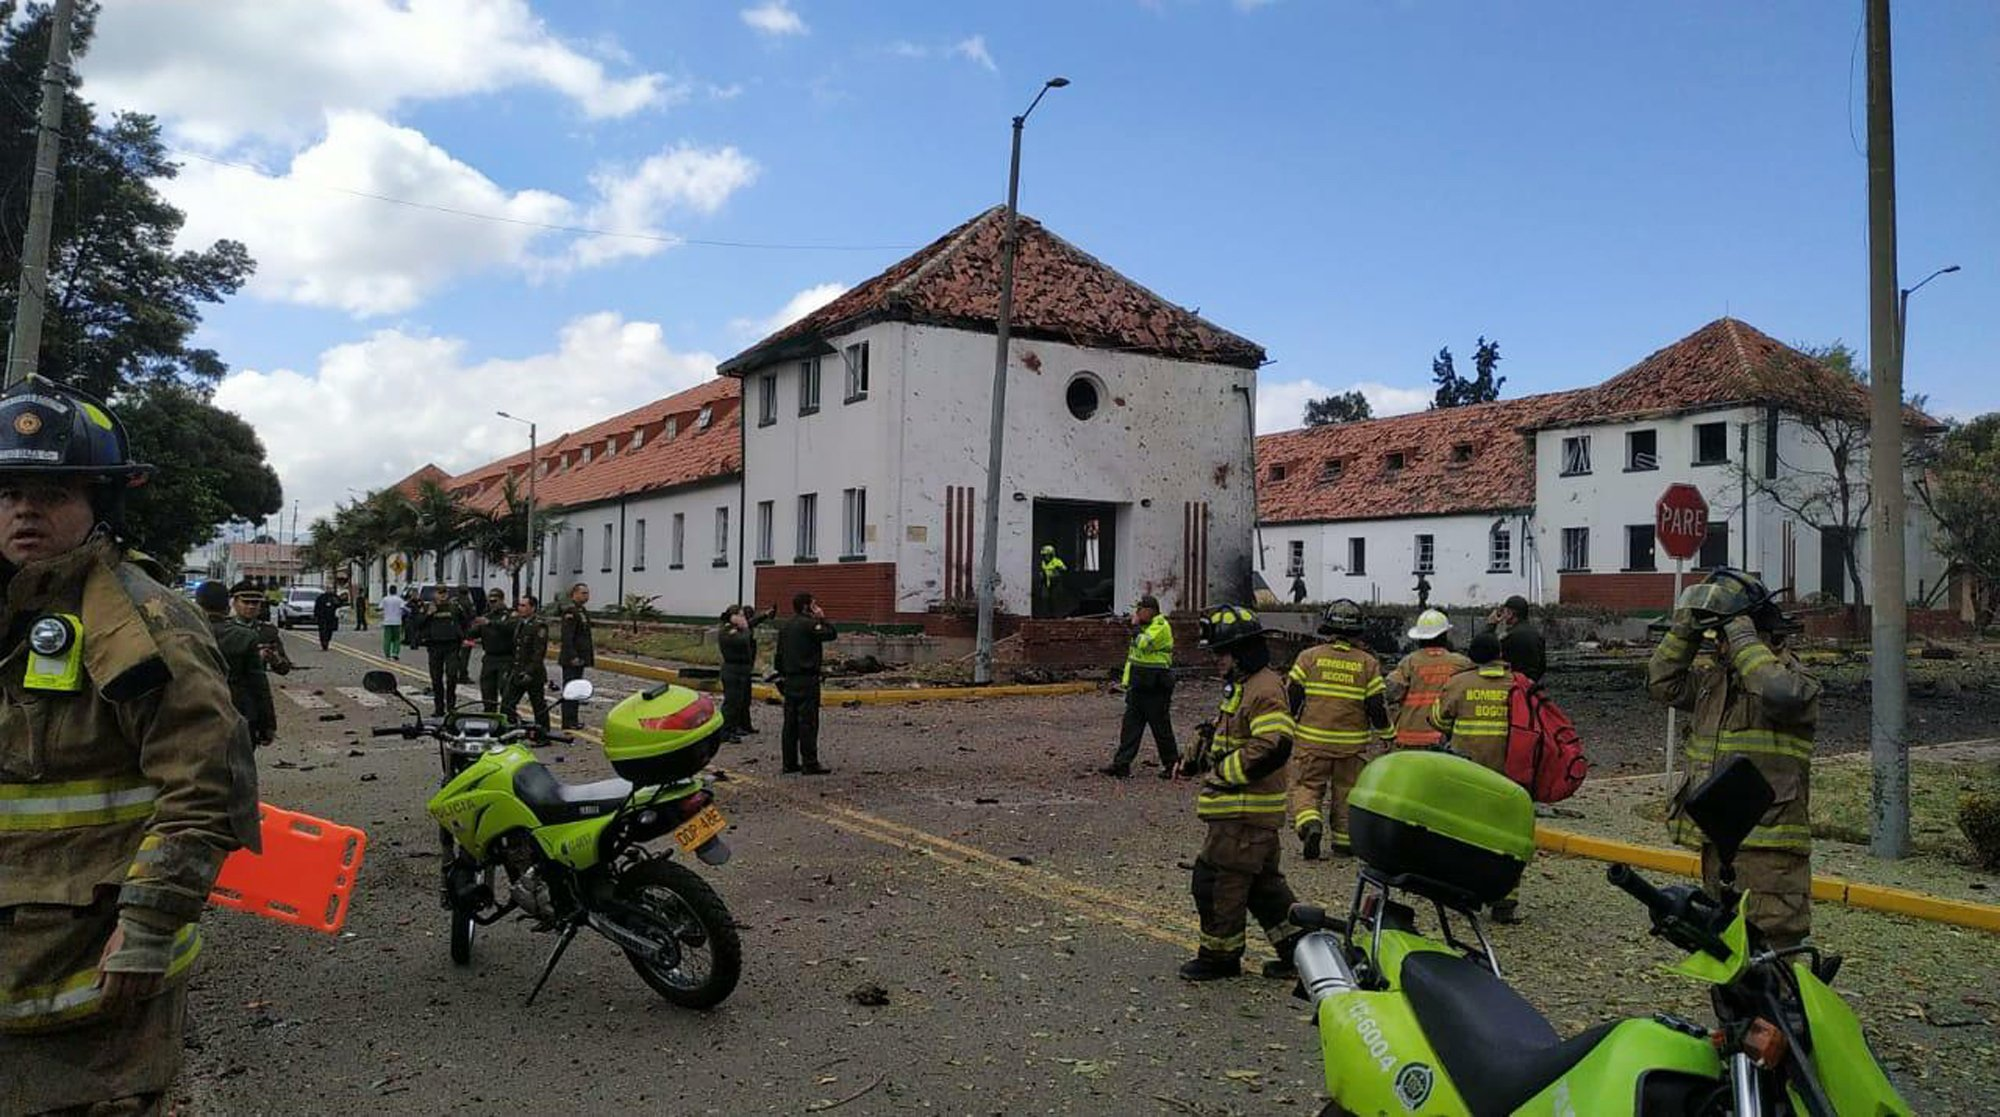 In this image provided by military personnel, emergency personnel respond to the scene of a deadly car bombing at a police academy on Thursday, Jan. 17, 2019, in Bogota, Colombia.